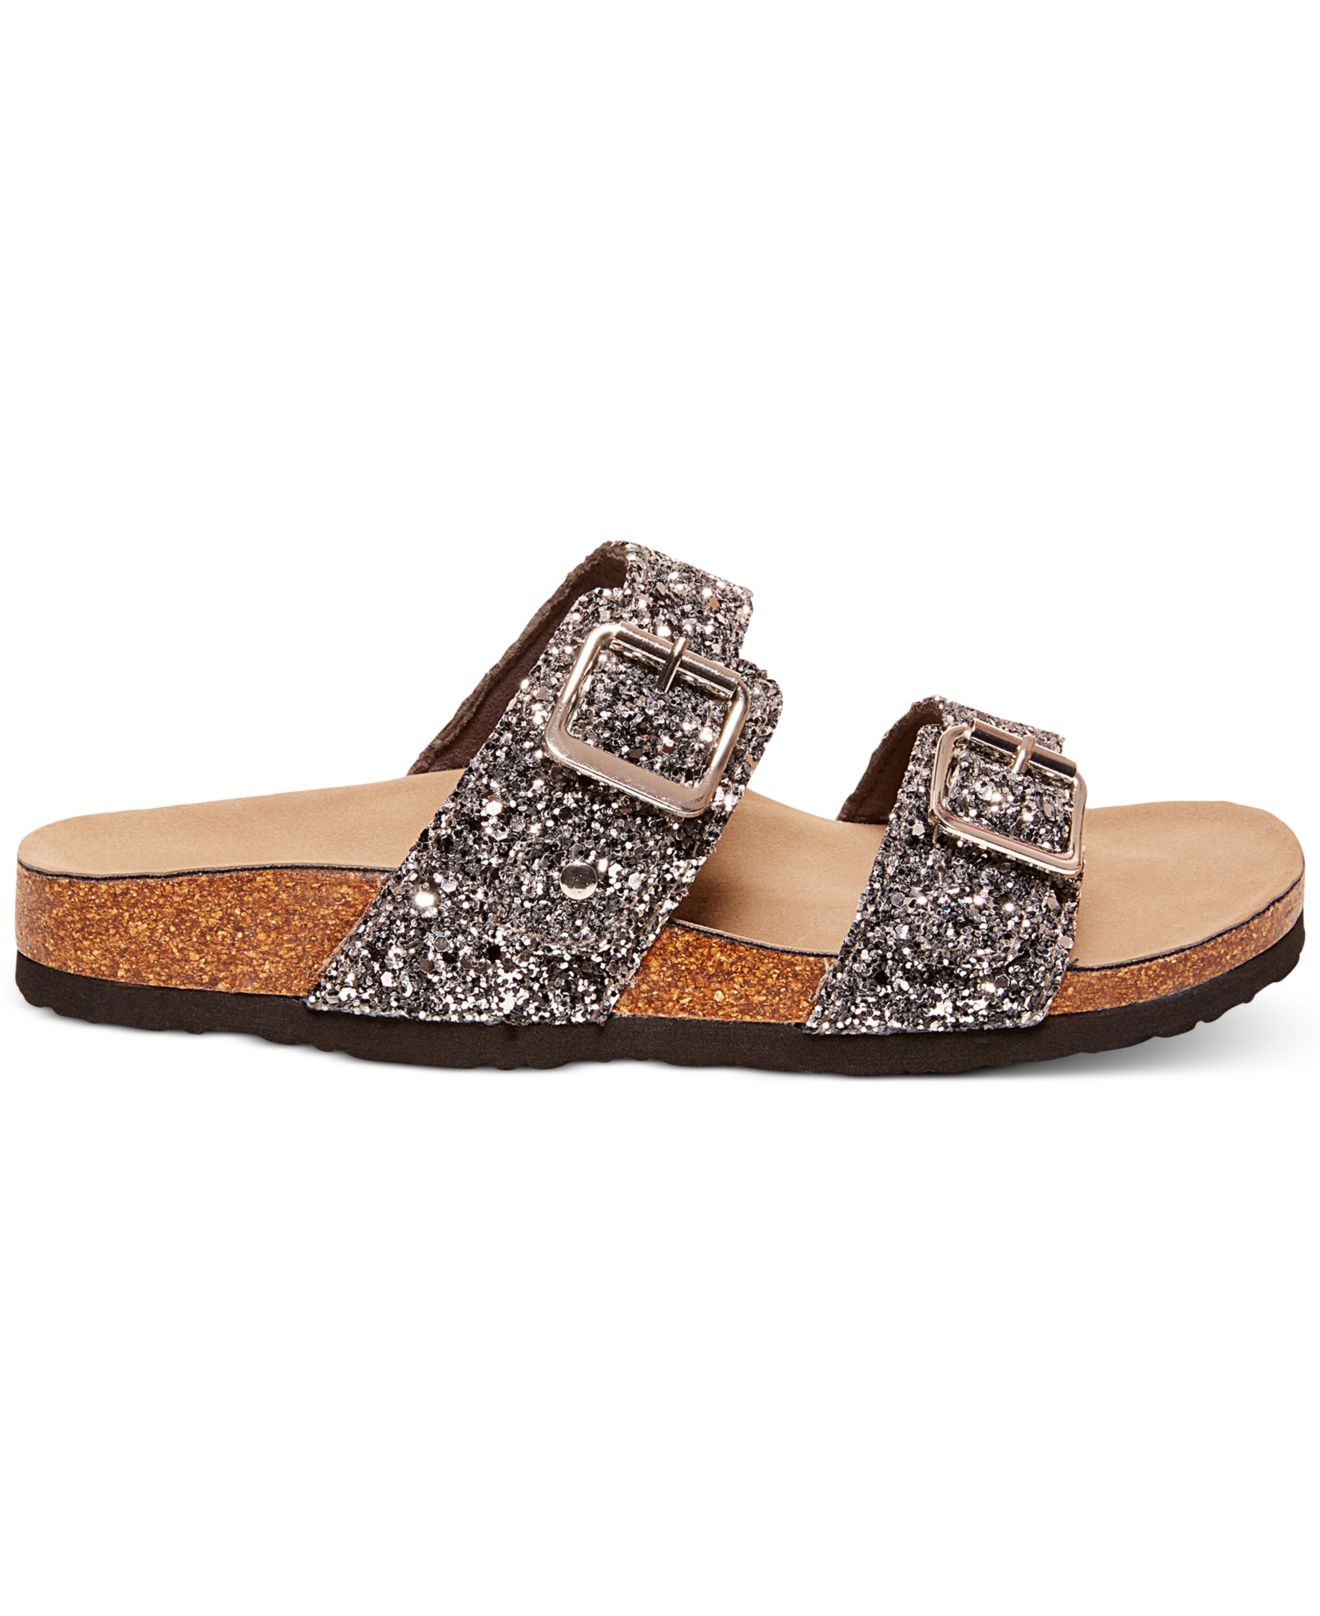 Lyst Madden Girl Brando Glitter Faux Leather Sandals In